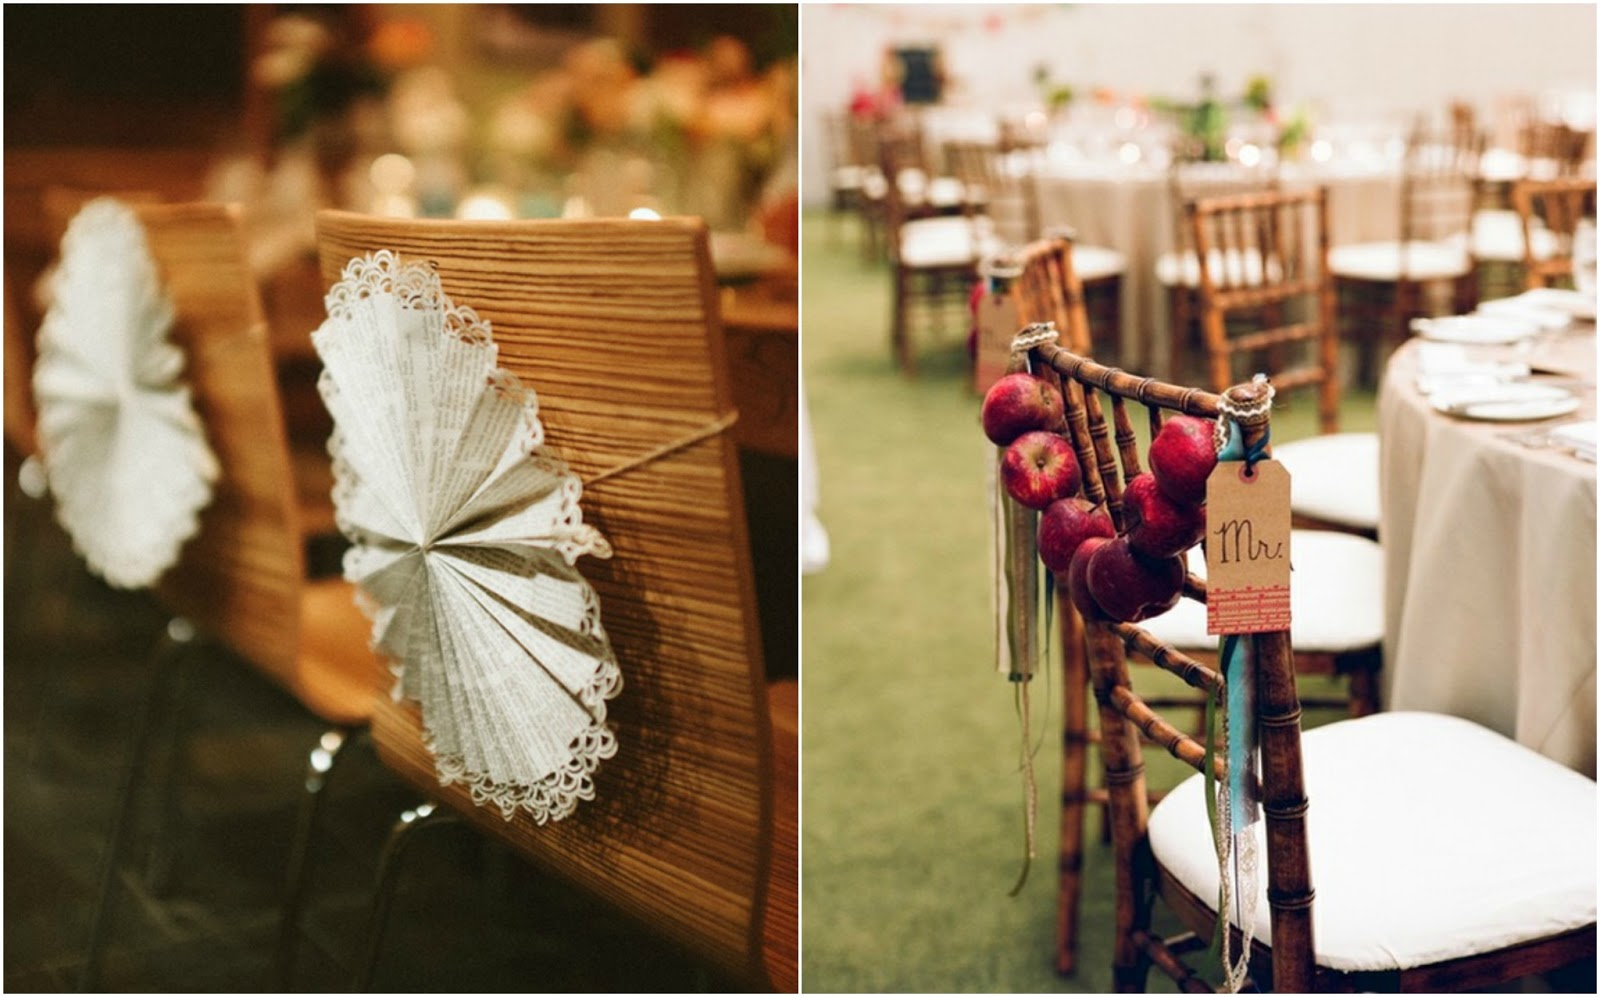 Decoracion Sillas Boda Decorar Sillas Boda Ideas Deco Chair Wedding 1